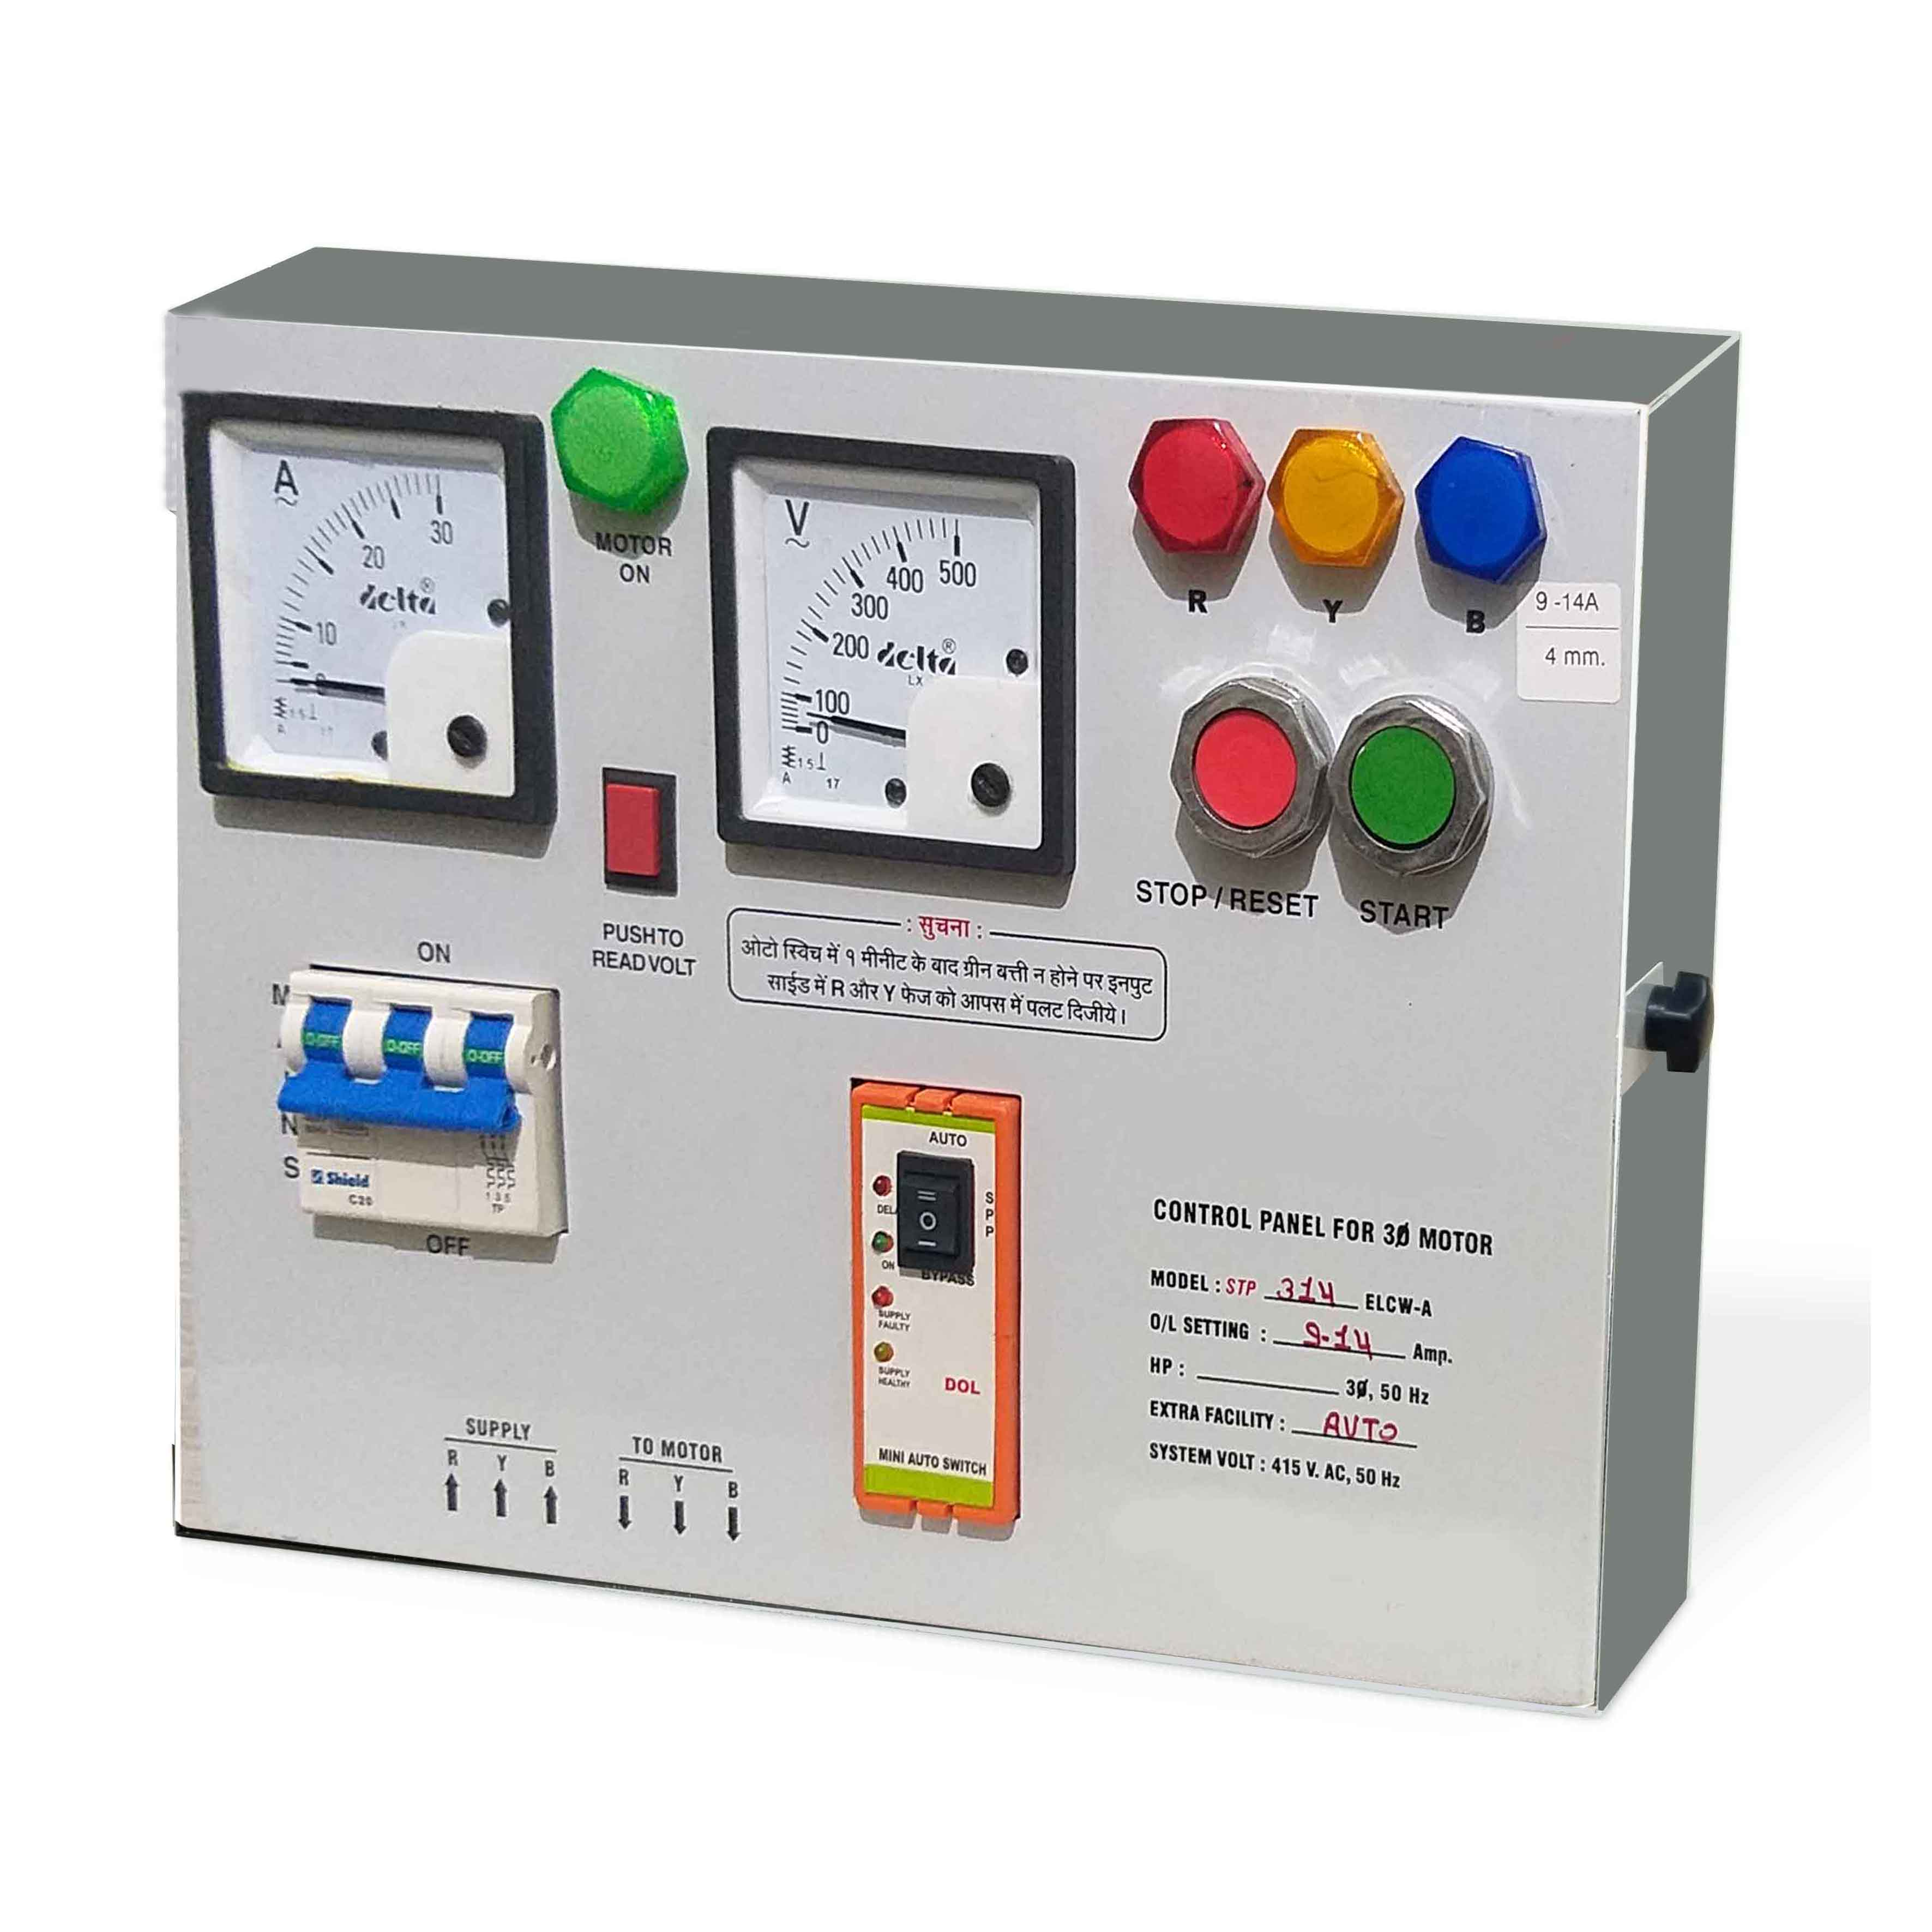 ELCW A electronic starter for 3 phase motor suitable up to 7.5 hp motor with MCB phase indication volt amp meter ssp and sutoswitch